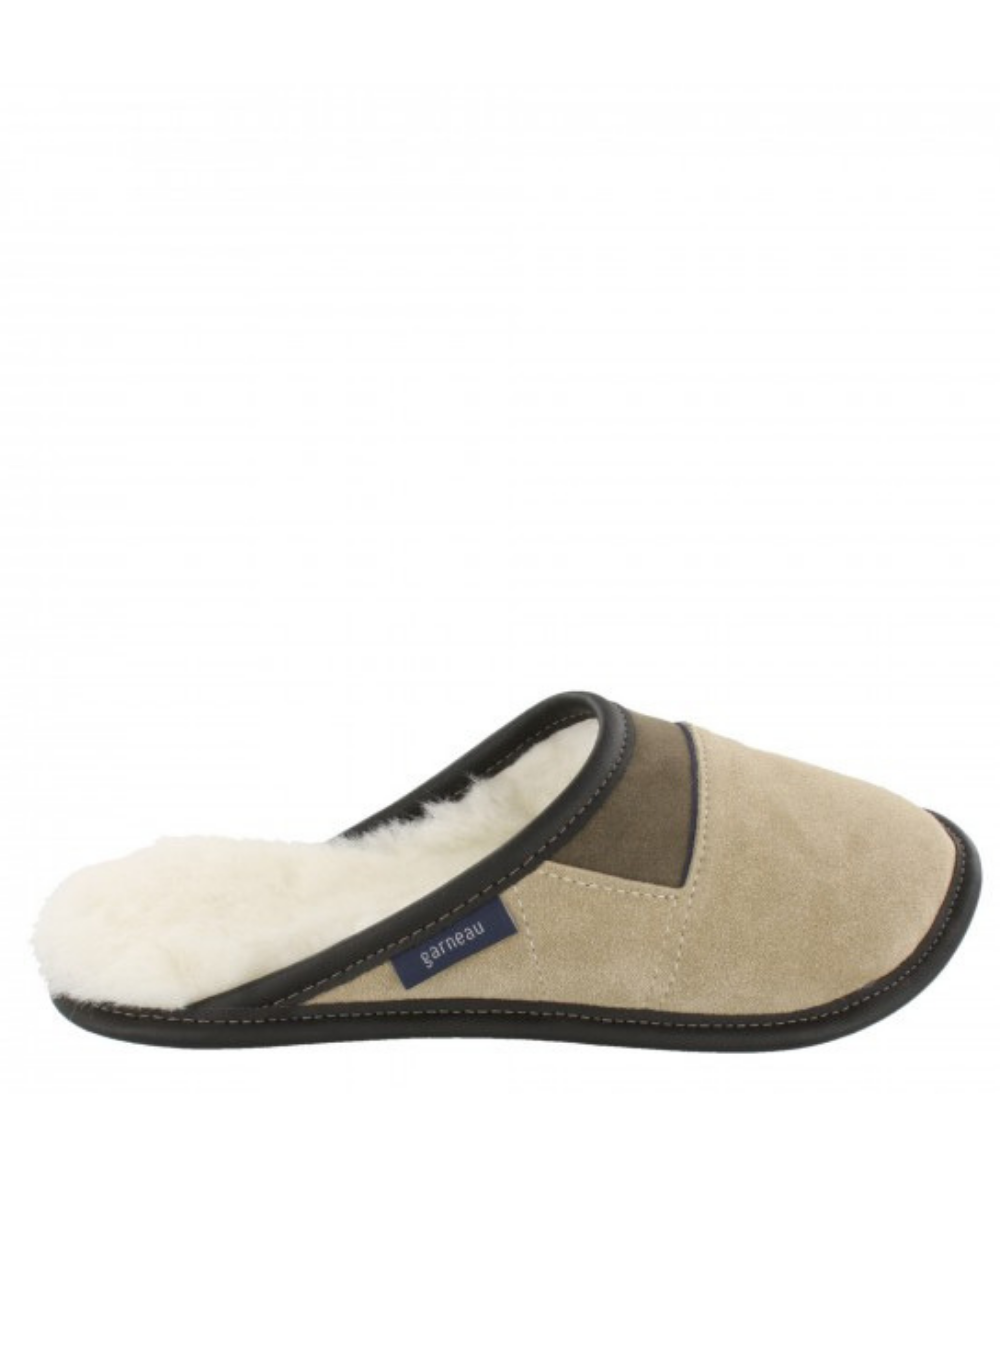 GARNEAU  ALL-PURPOSE MULE SLIPPERS 0350